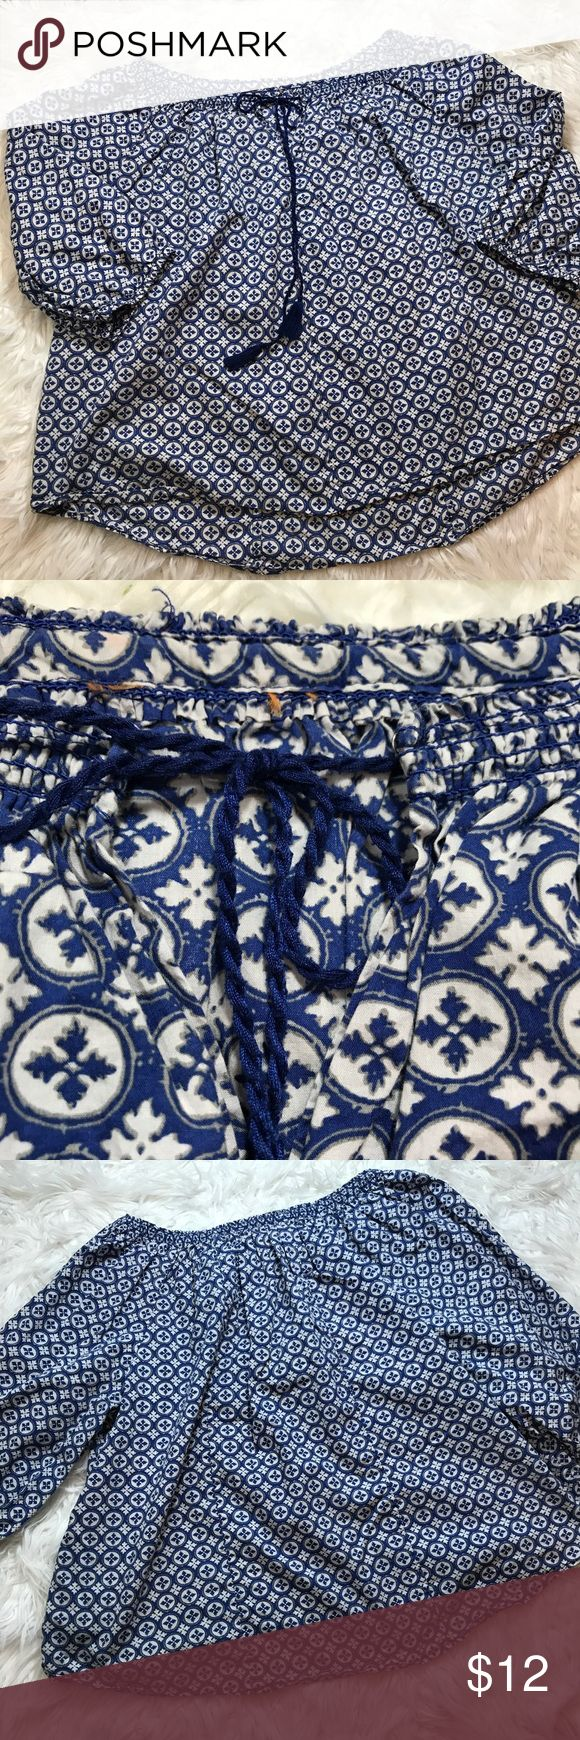 Boho Top Light wear only flaw is my daughter cit the tags off. Priced to sell. Purchased at Lucky Brand Outlet Lucky Brand Tops Tunics